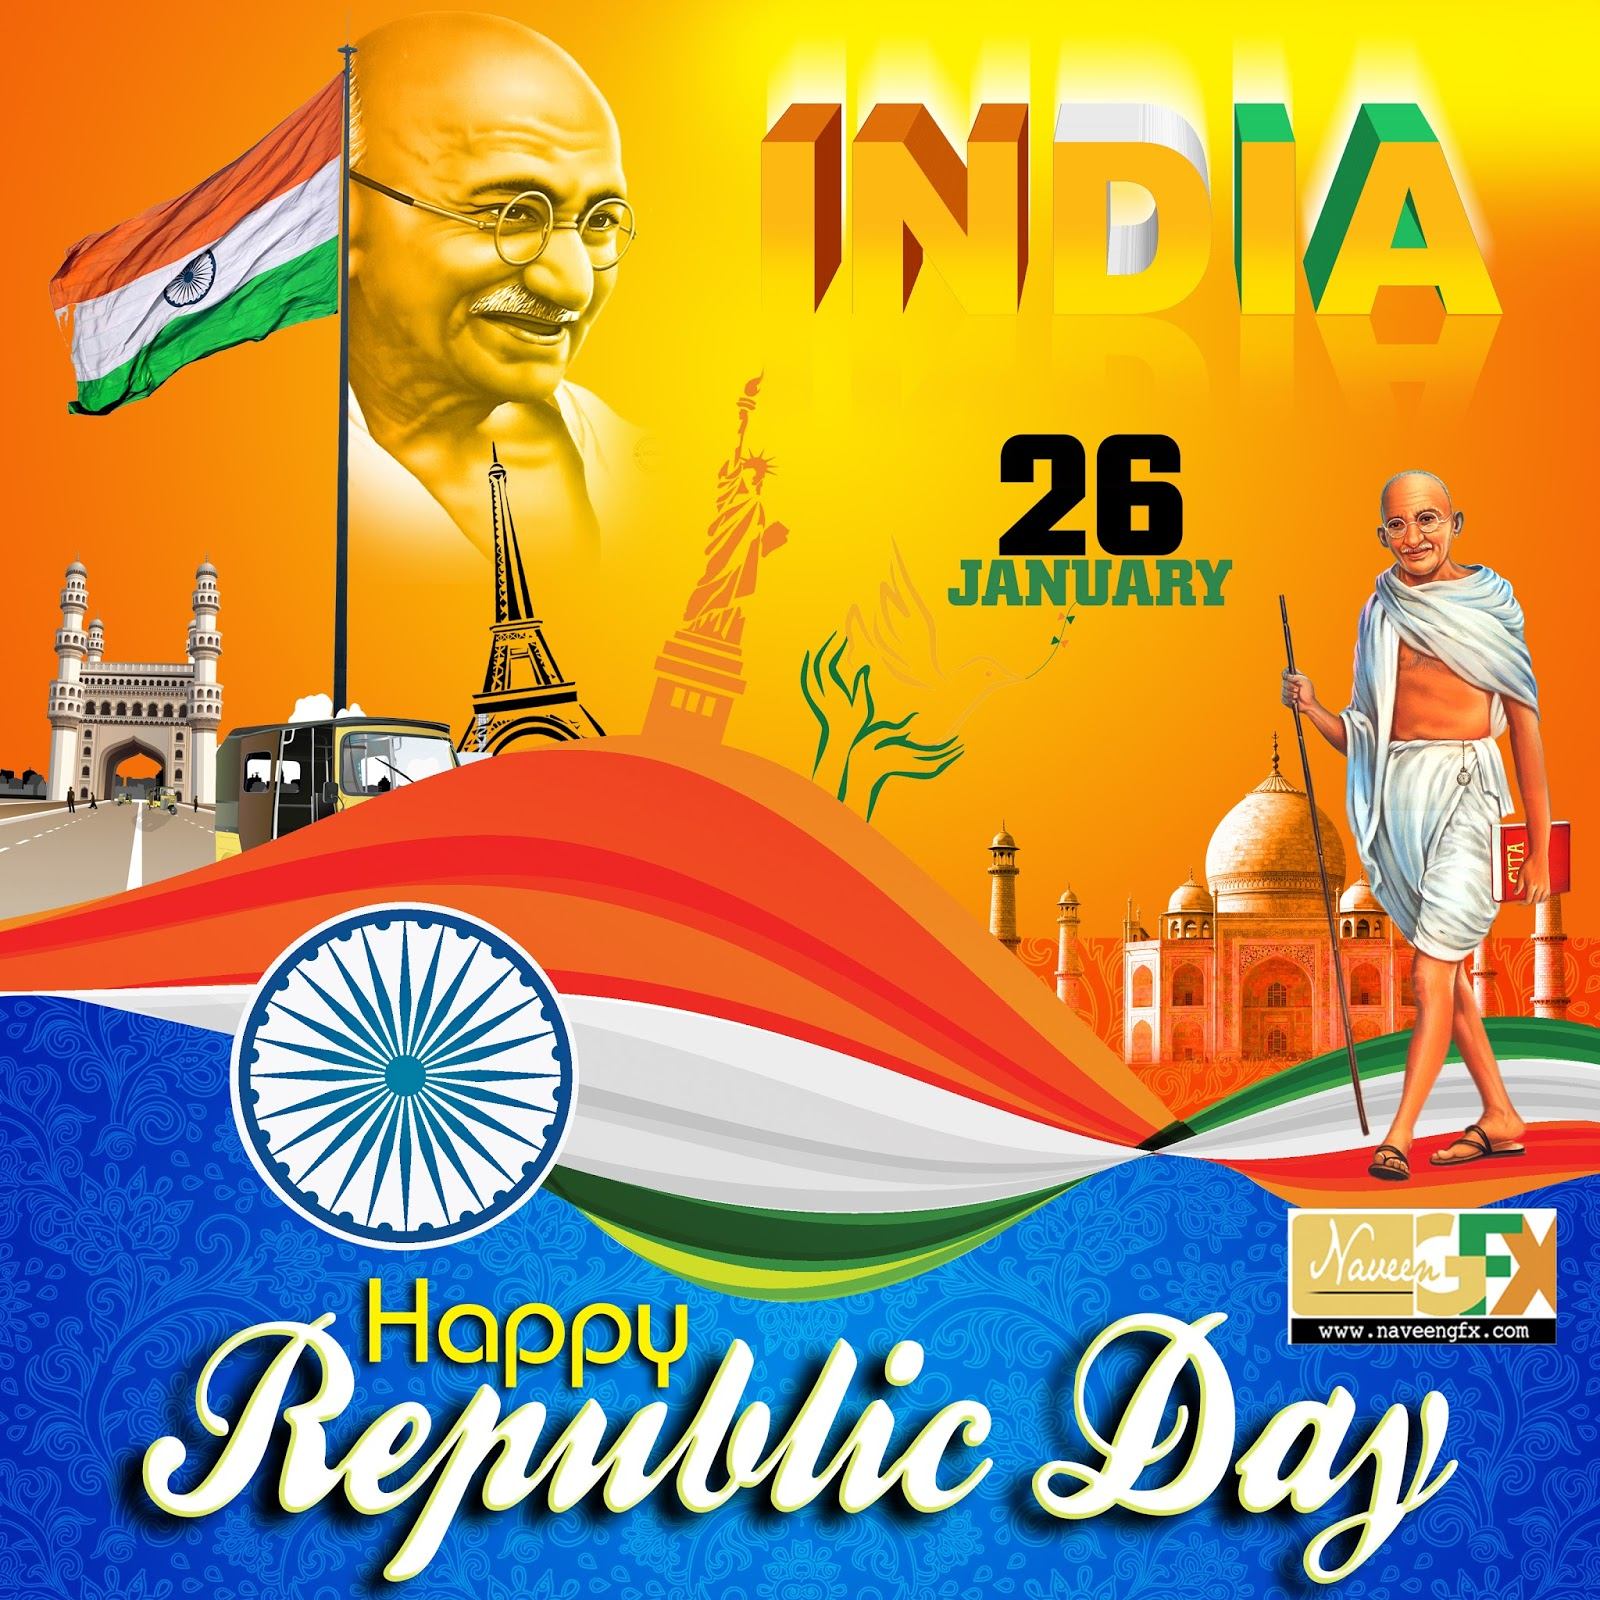 Poster design template free - Happy Republic Day Quotes And Poster Psd Templates